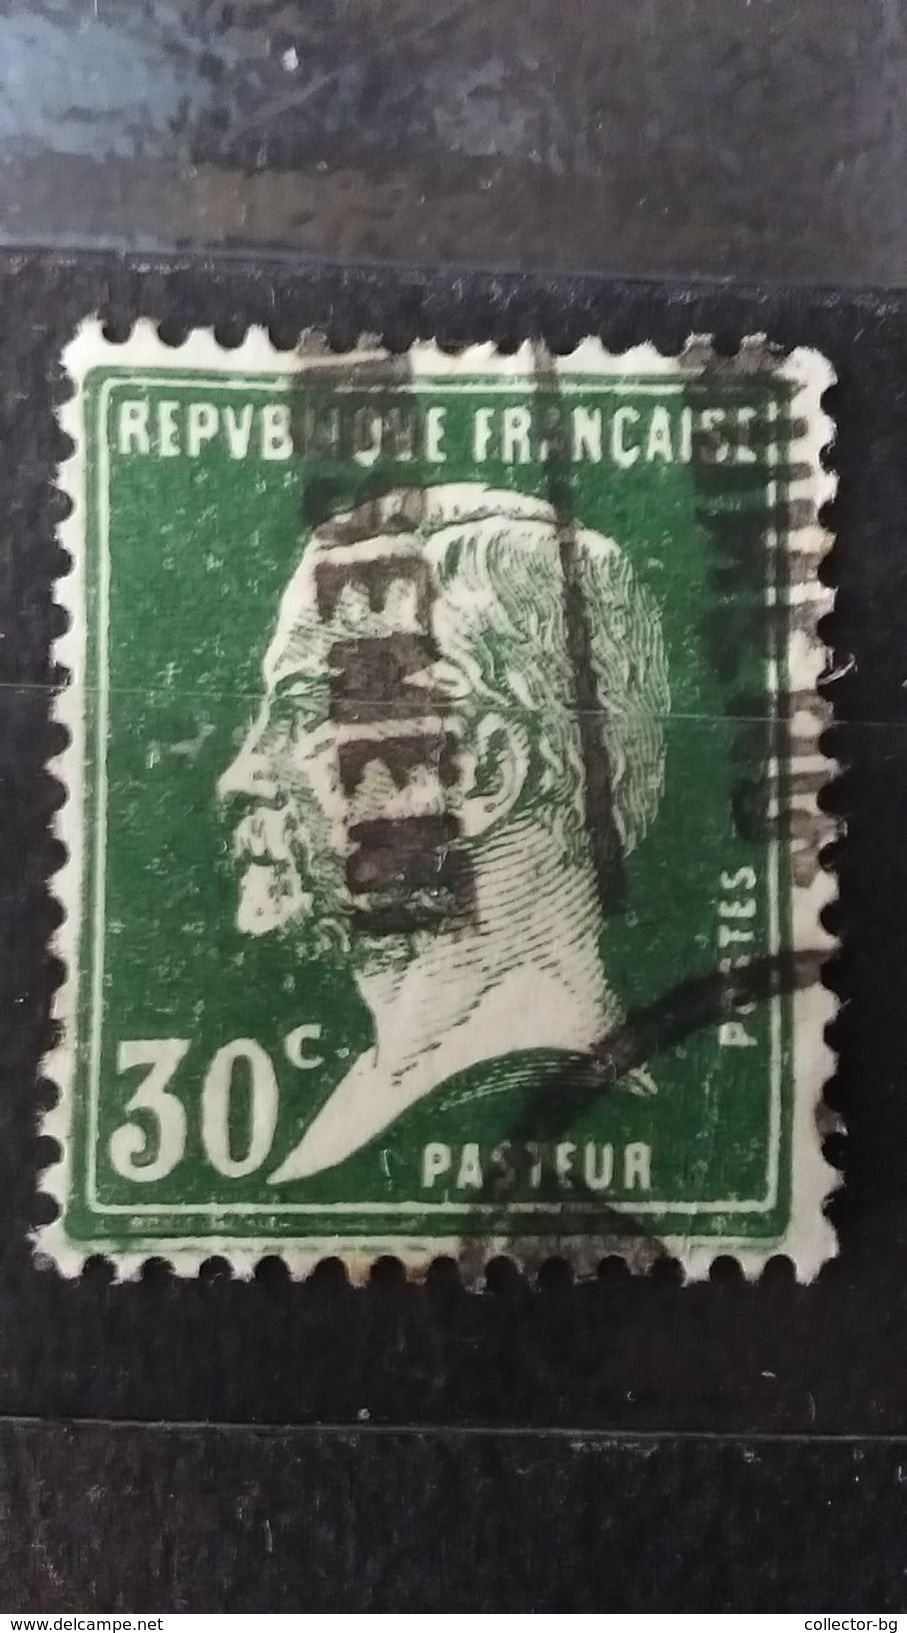 RARE 30c FRANCAISE PASTEUR FRANCE WATERMARK SEAL STAMP